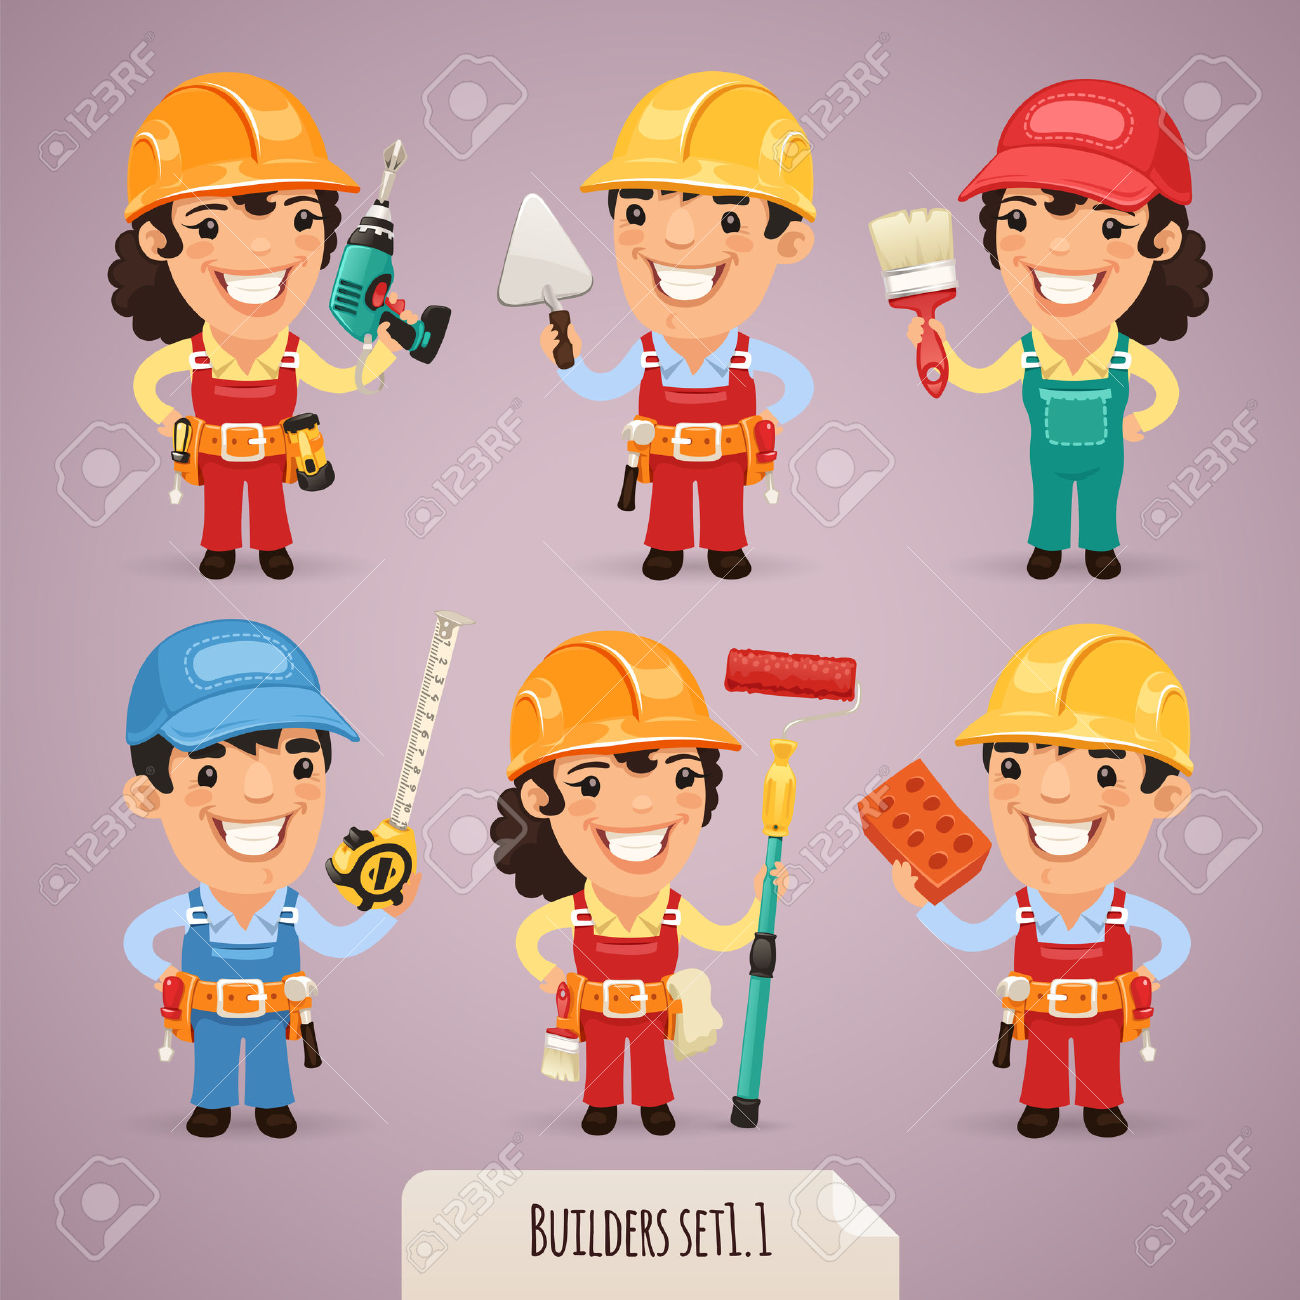 Builders Cartoon Characters Royalty Free Cliparts, Vectors, And.